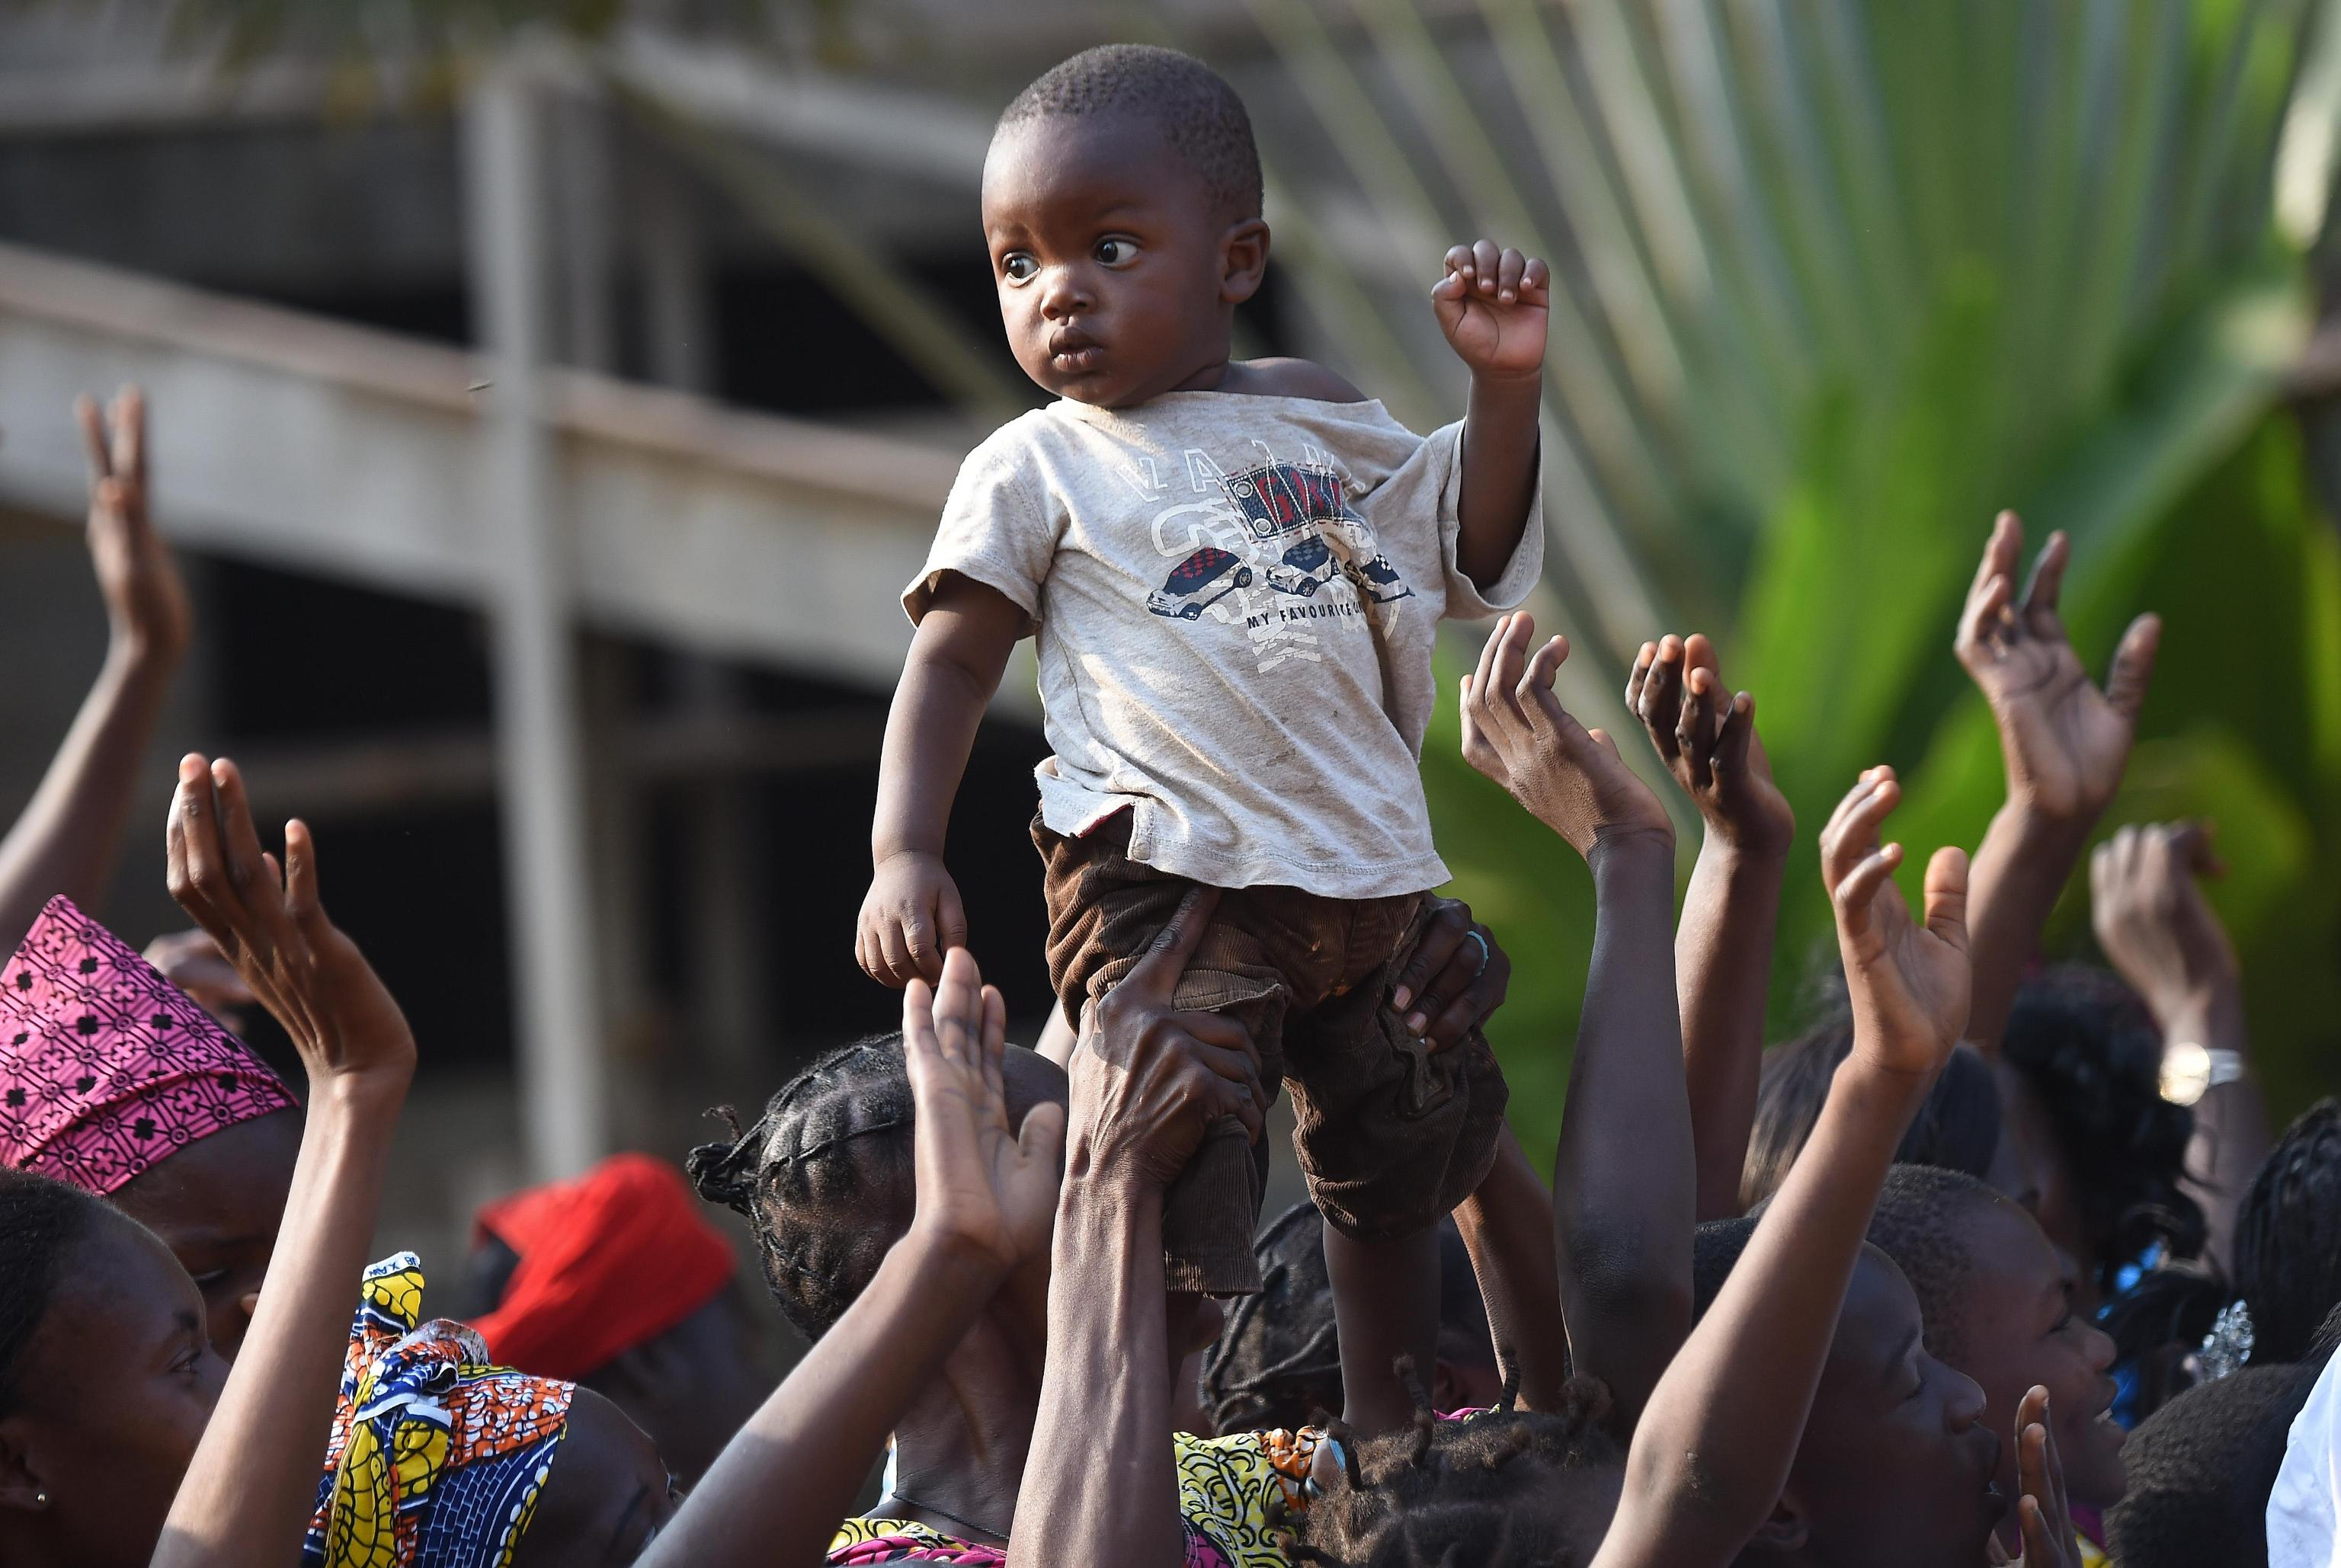 A boy is lifted by her mother at the arrival of Pope Francis at a meeting with evangelical communities at the evangelical theological school in Bangui